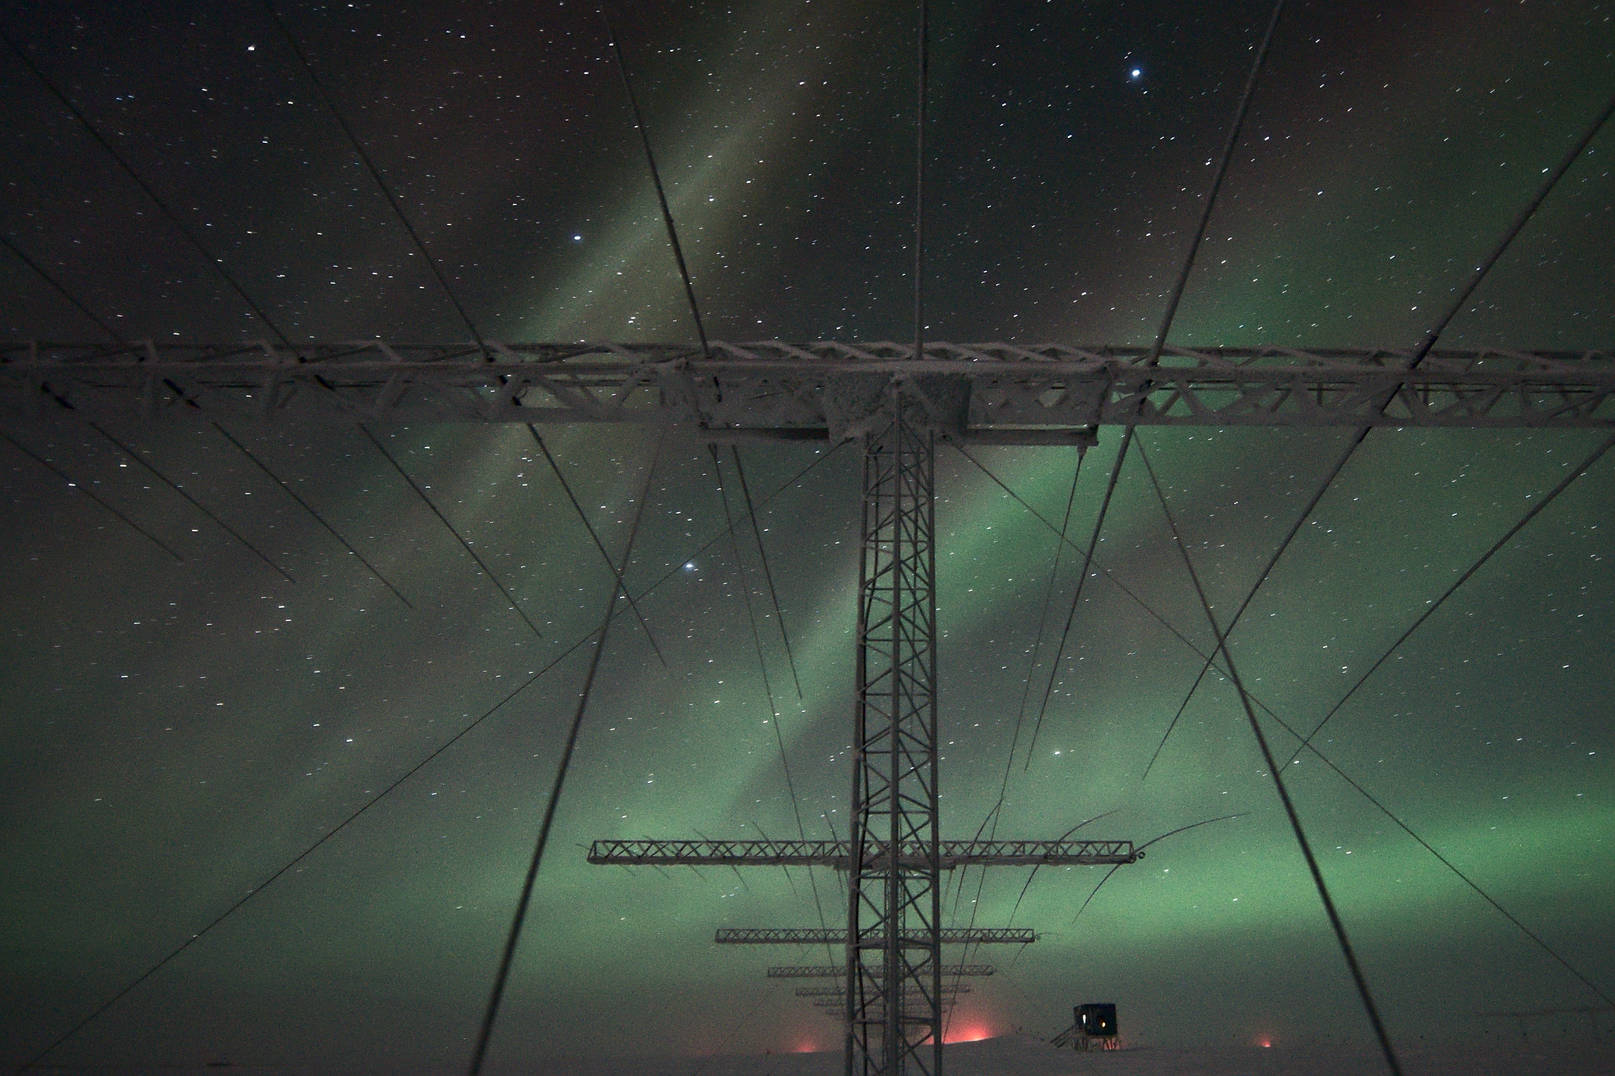 SuperDARN antennae and auroras